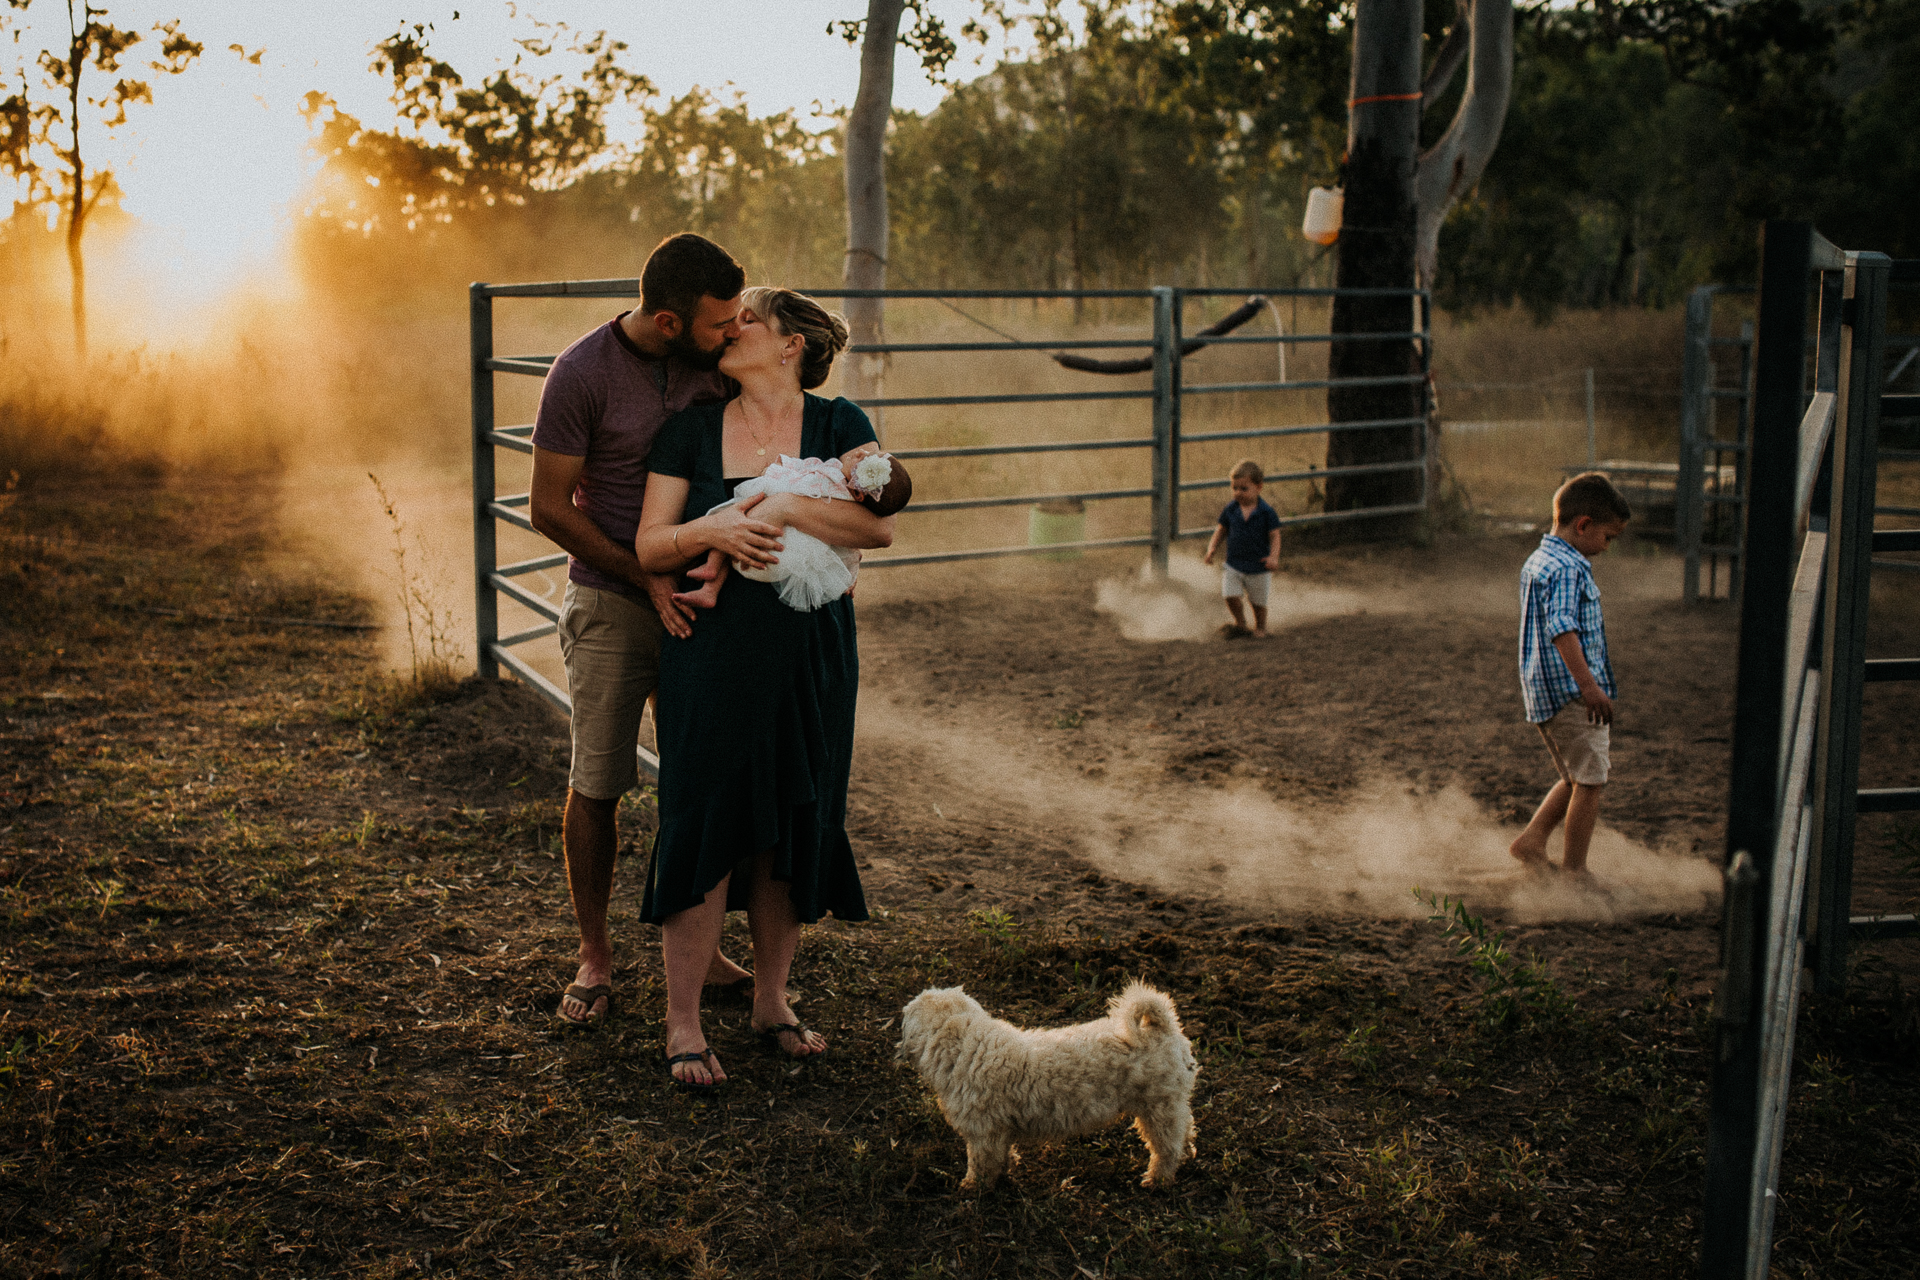 LDP_4008Townsville+Ayr+Charters-Towers+Ingham+Cairns Family Real LIfe Lifestyle Photographer Documentary Life baby children.jpg